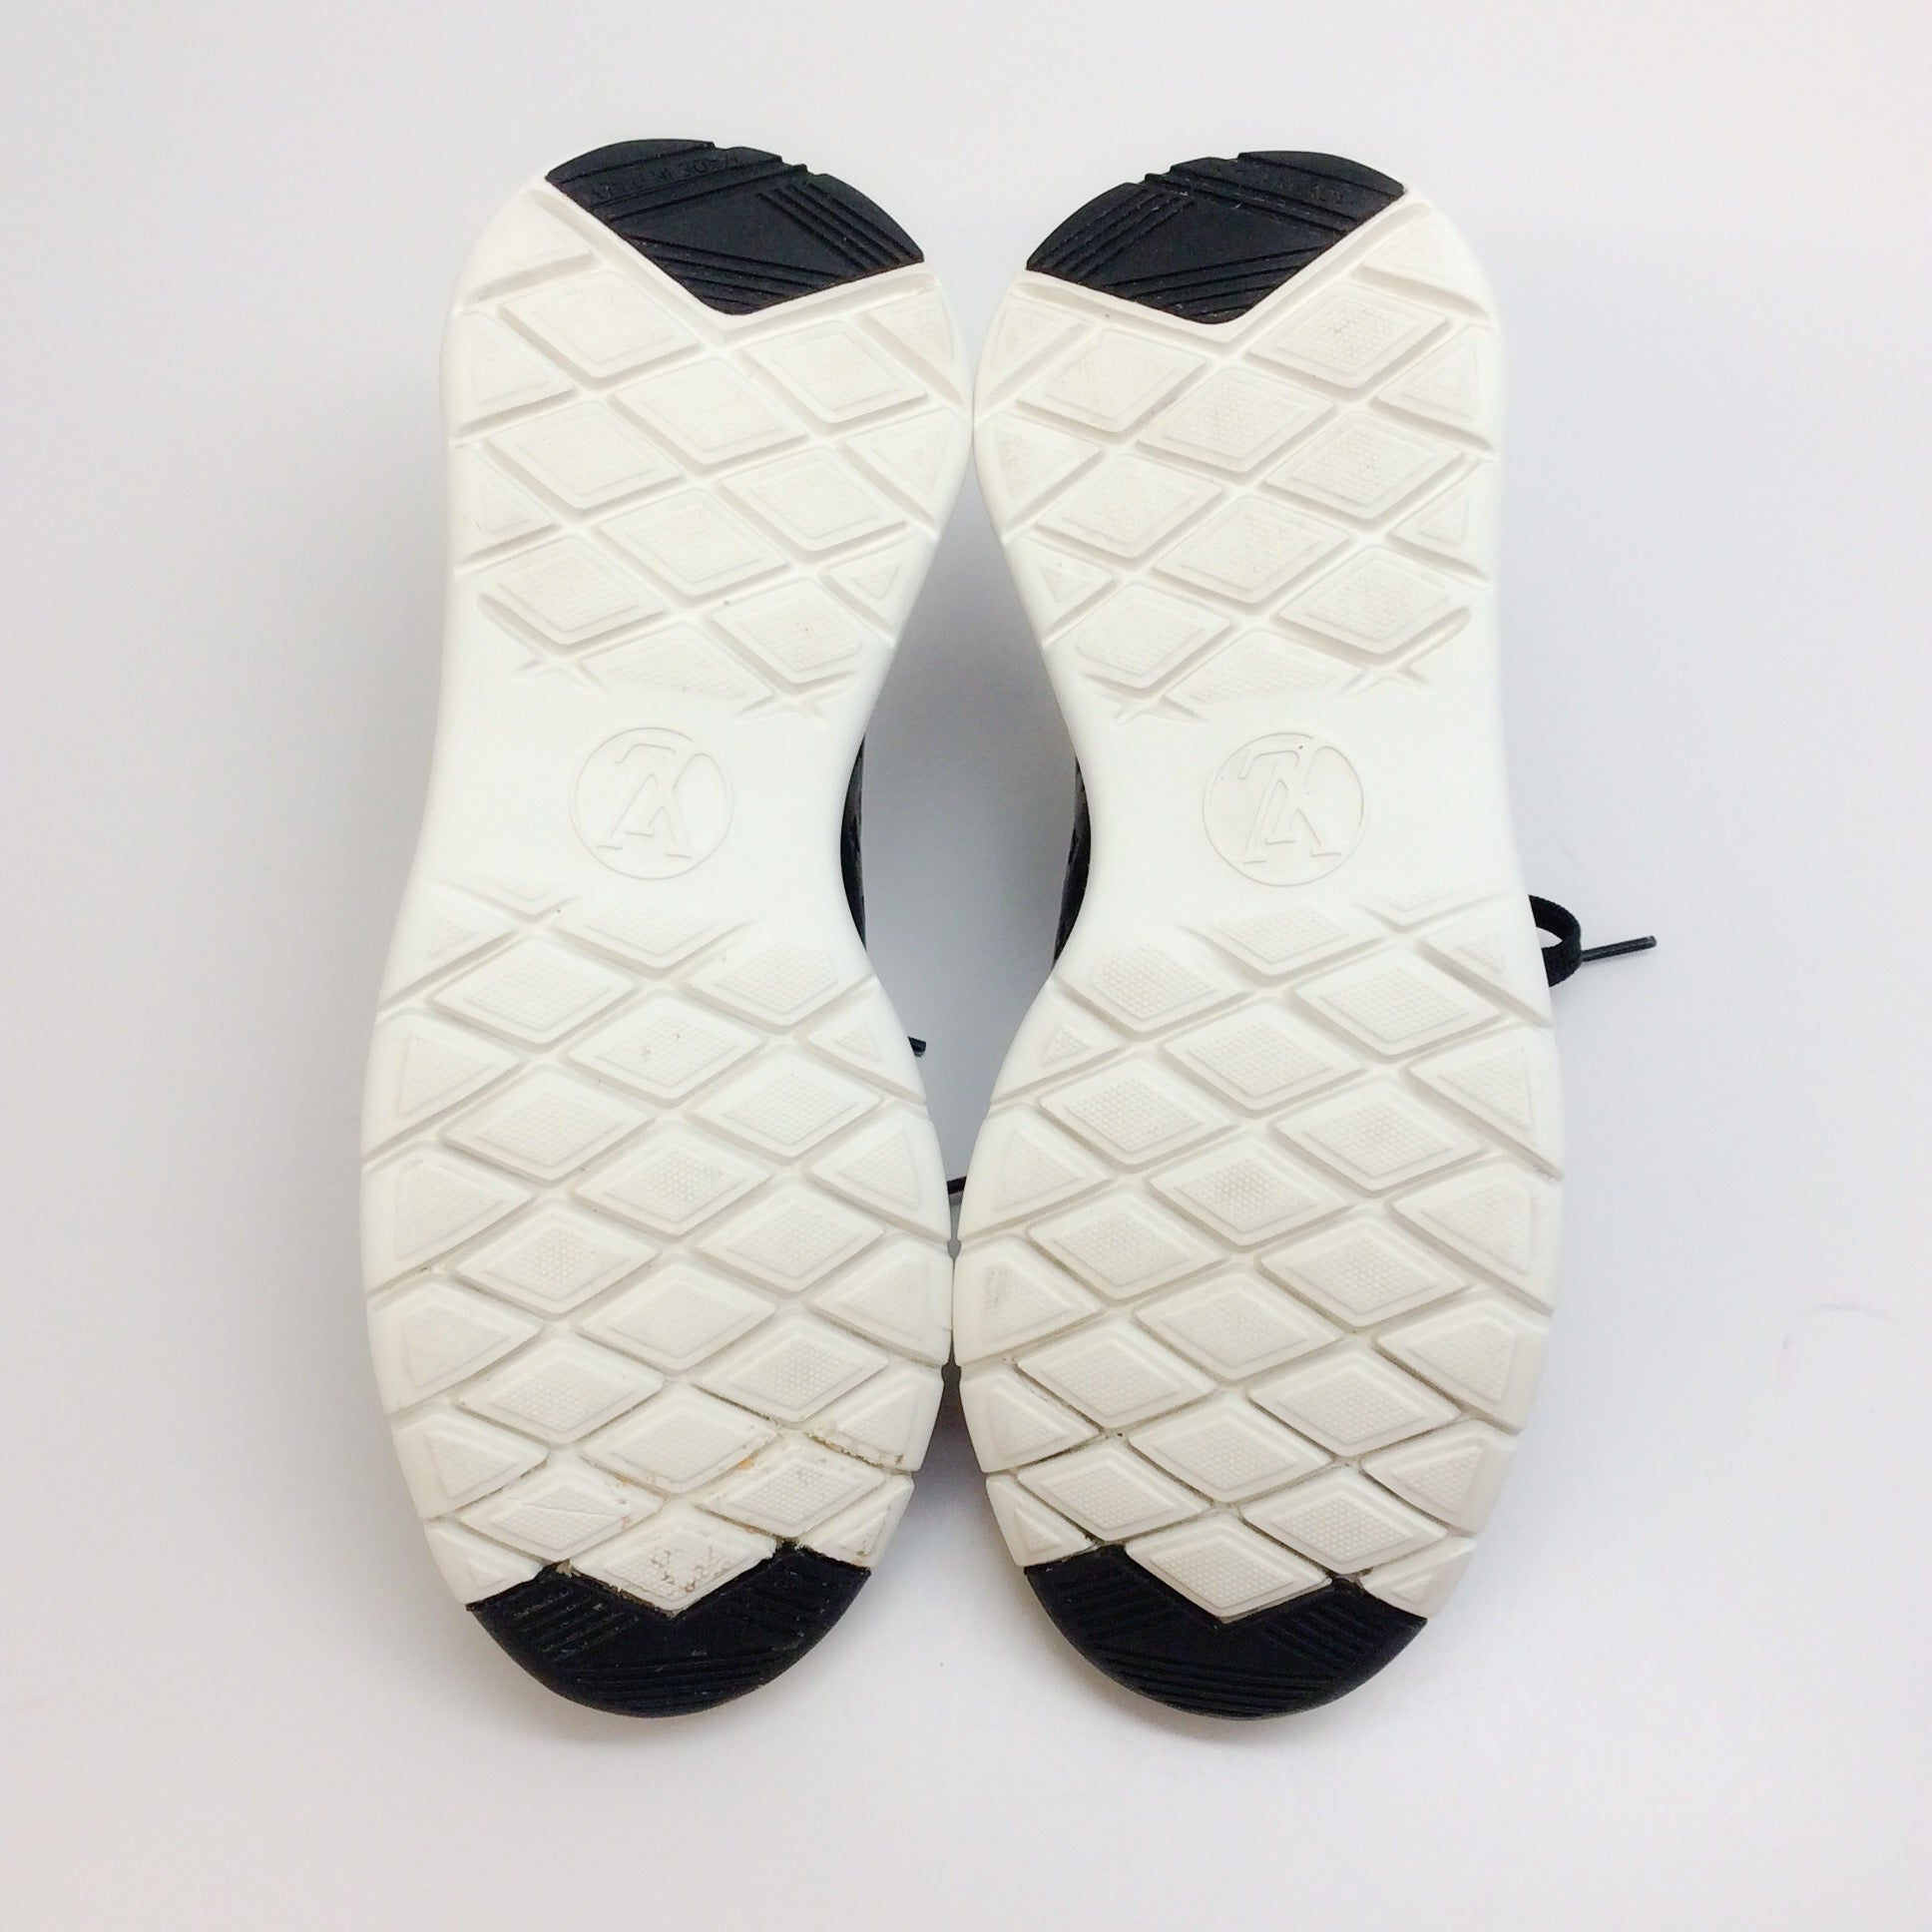 Louis Vuitton Black / White Run Away Sneakers